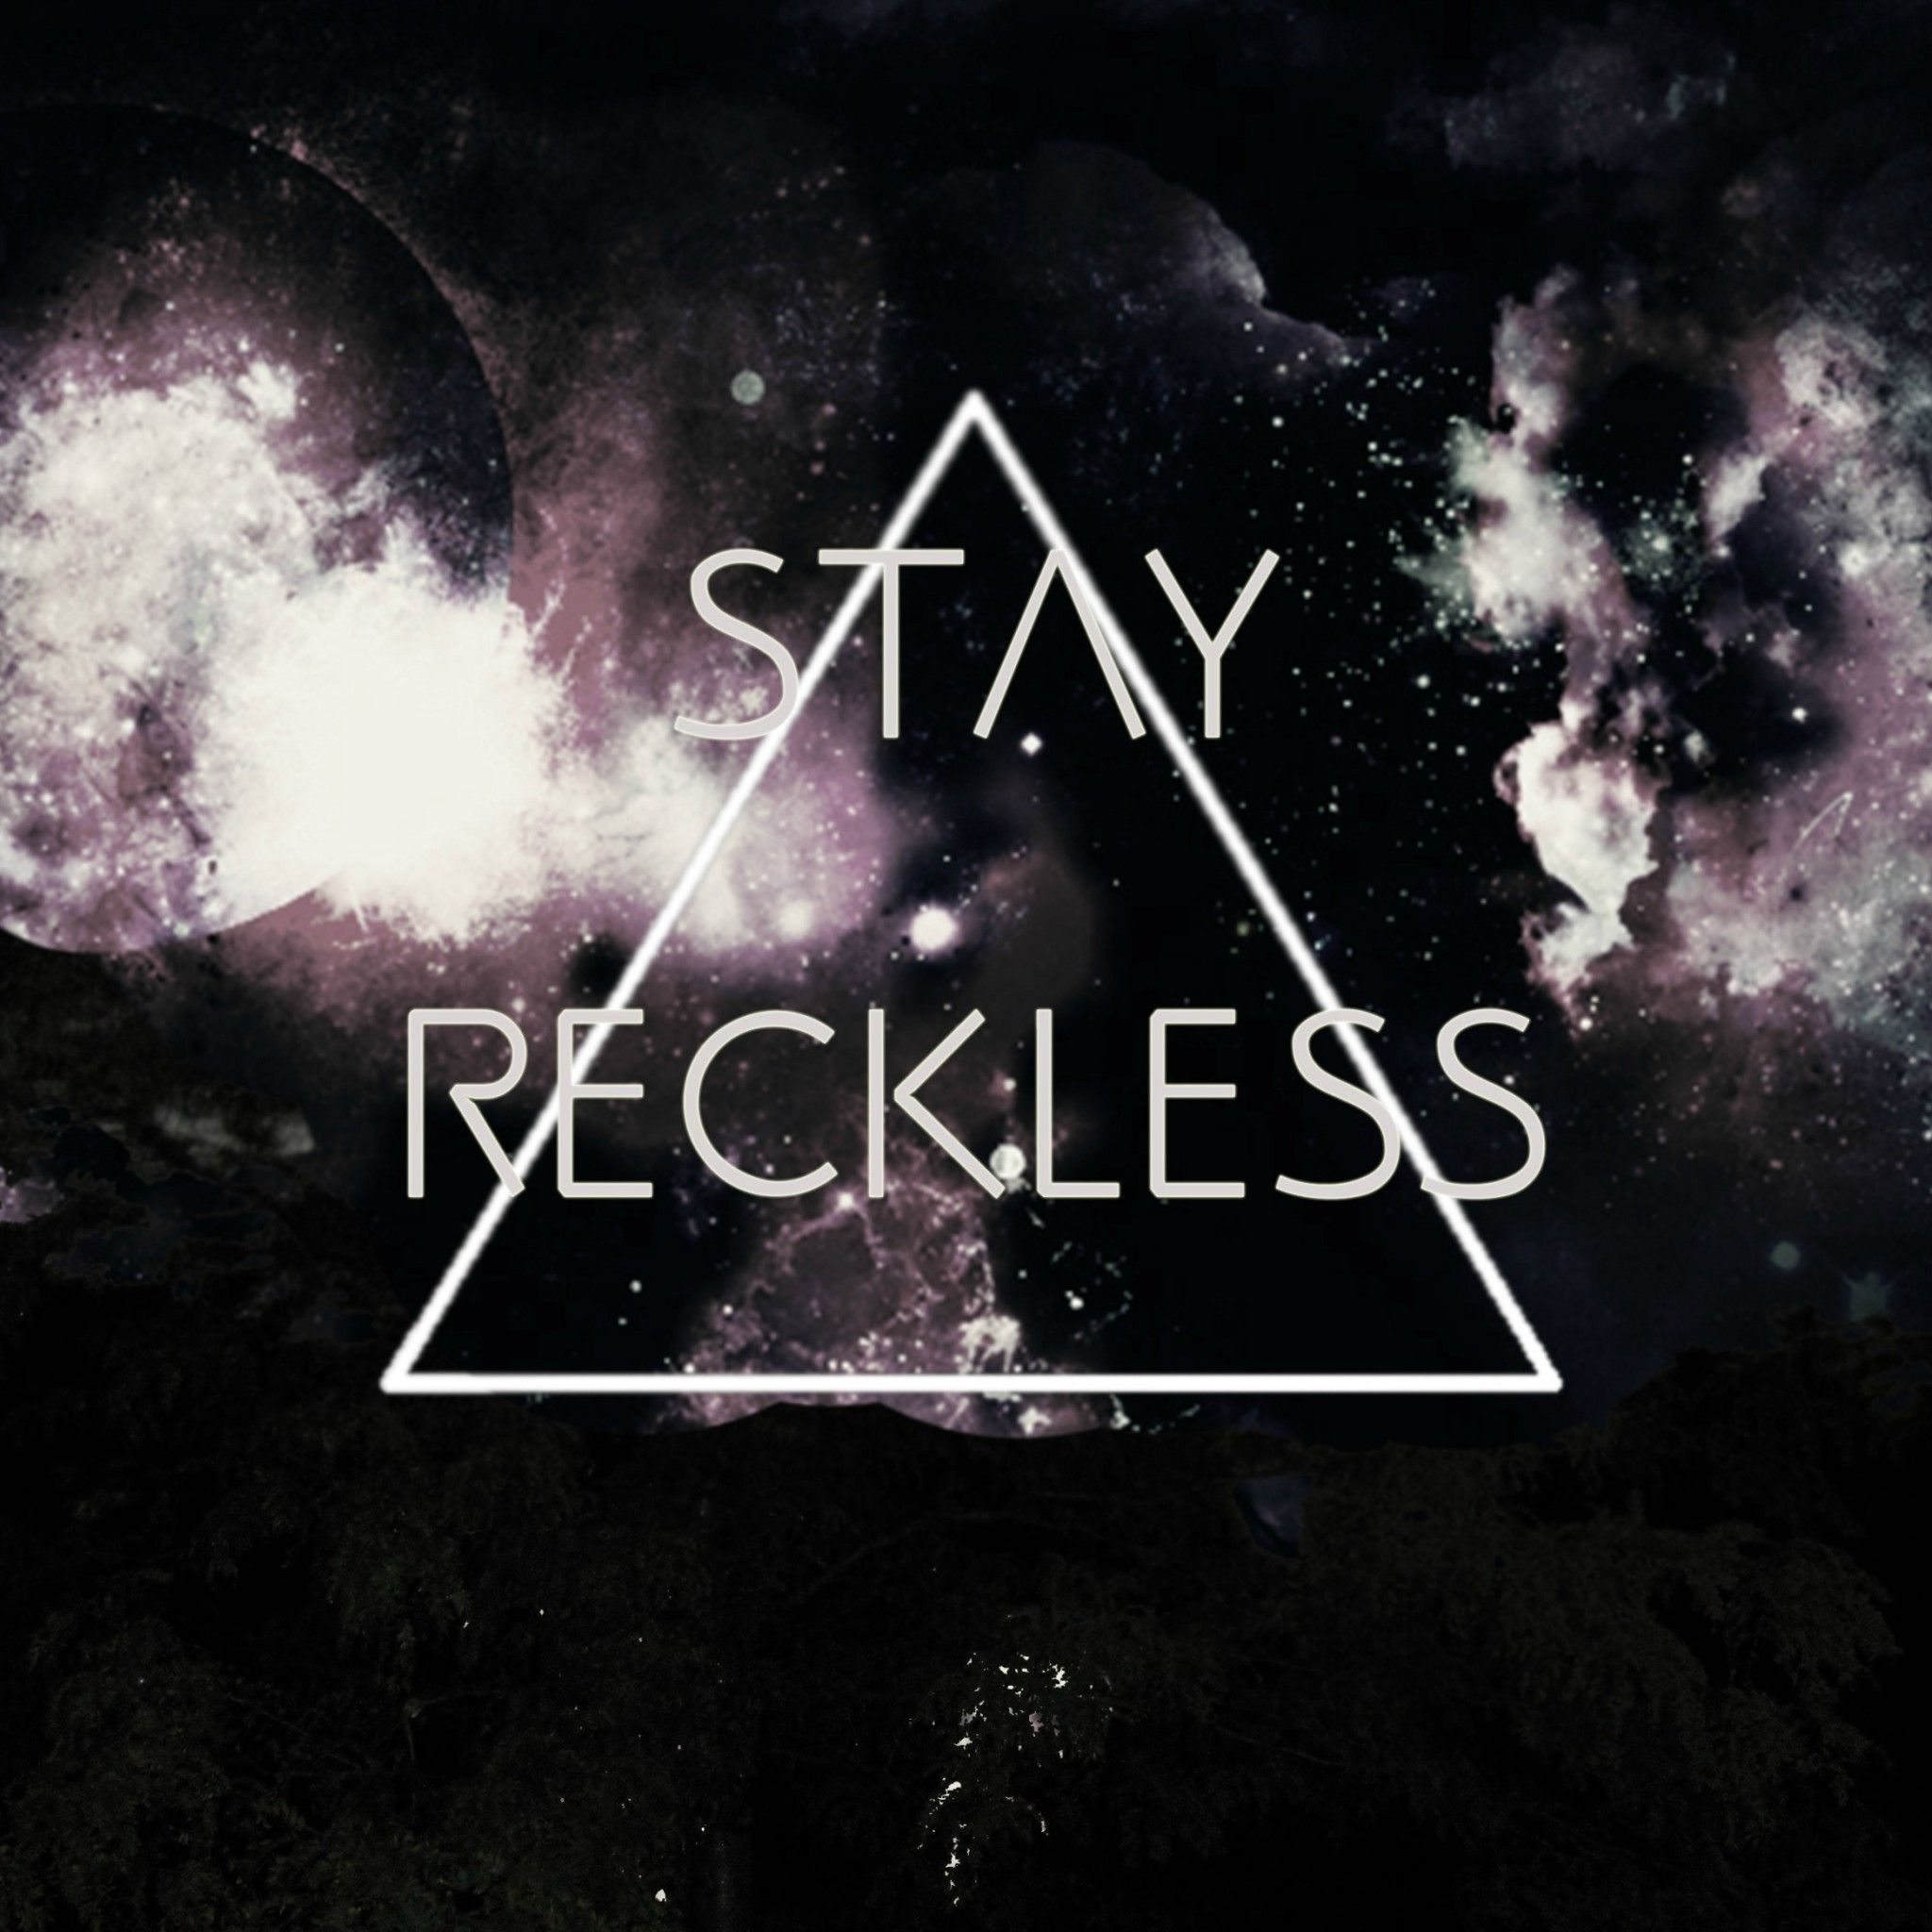 Stay Reckless Tap To See More Hipster Quotes Wallpapers Mobile9 Iphone Wallpaper Tumblr Hipster Hipster Wallpaper Tumblr Hipster Quote